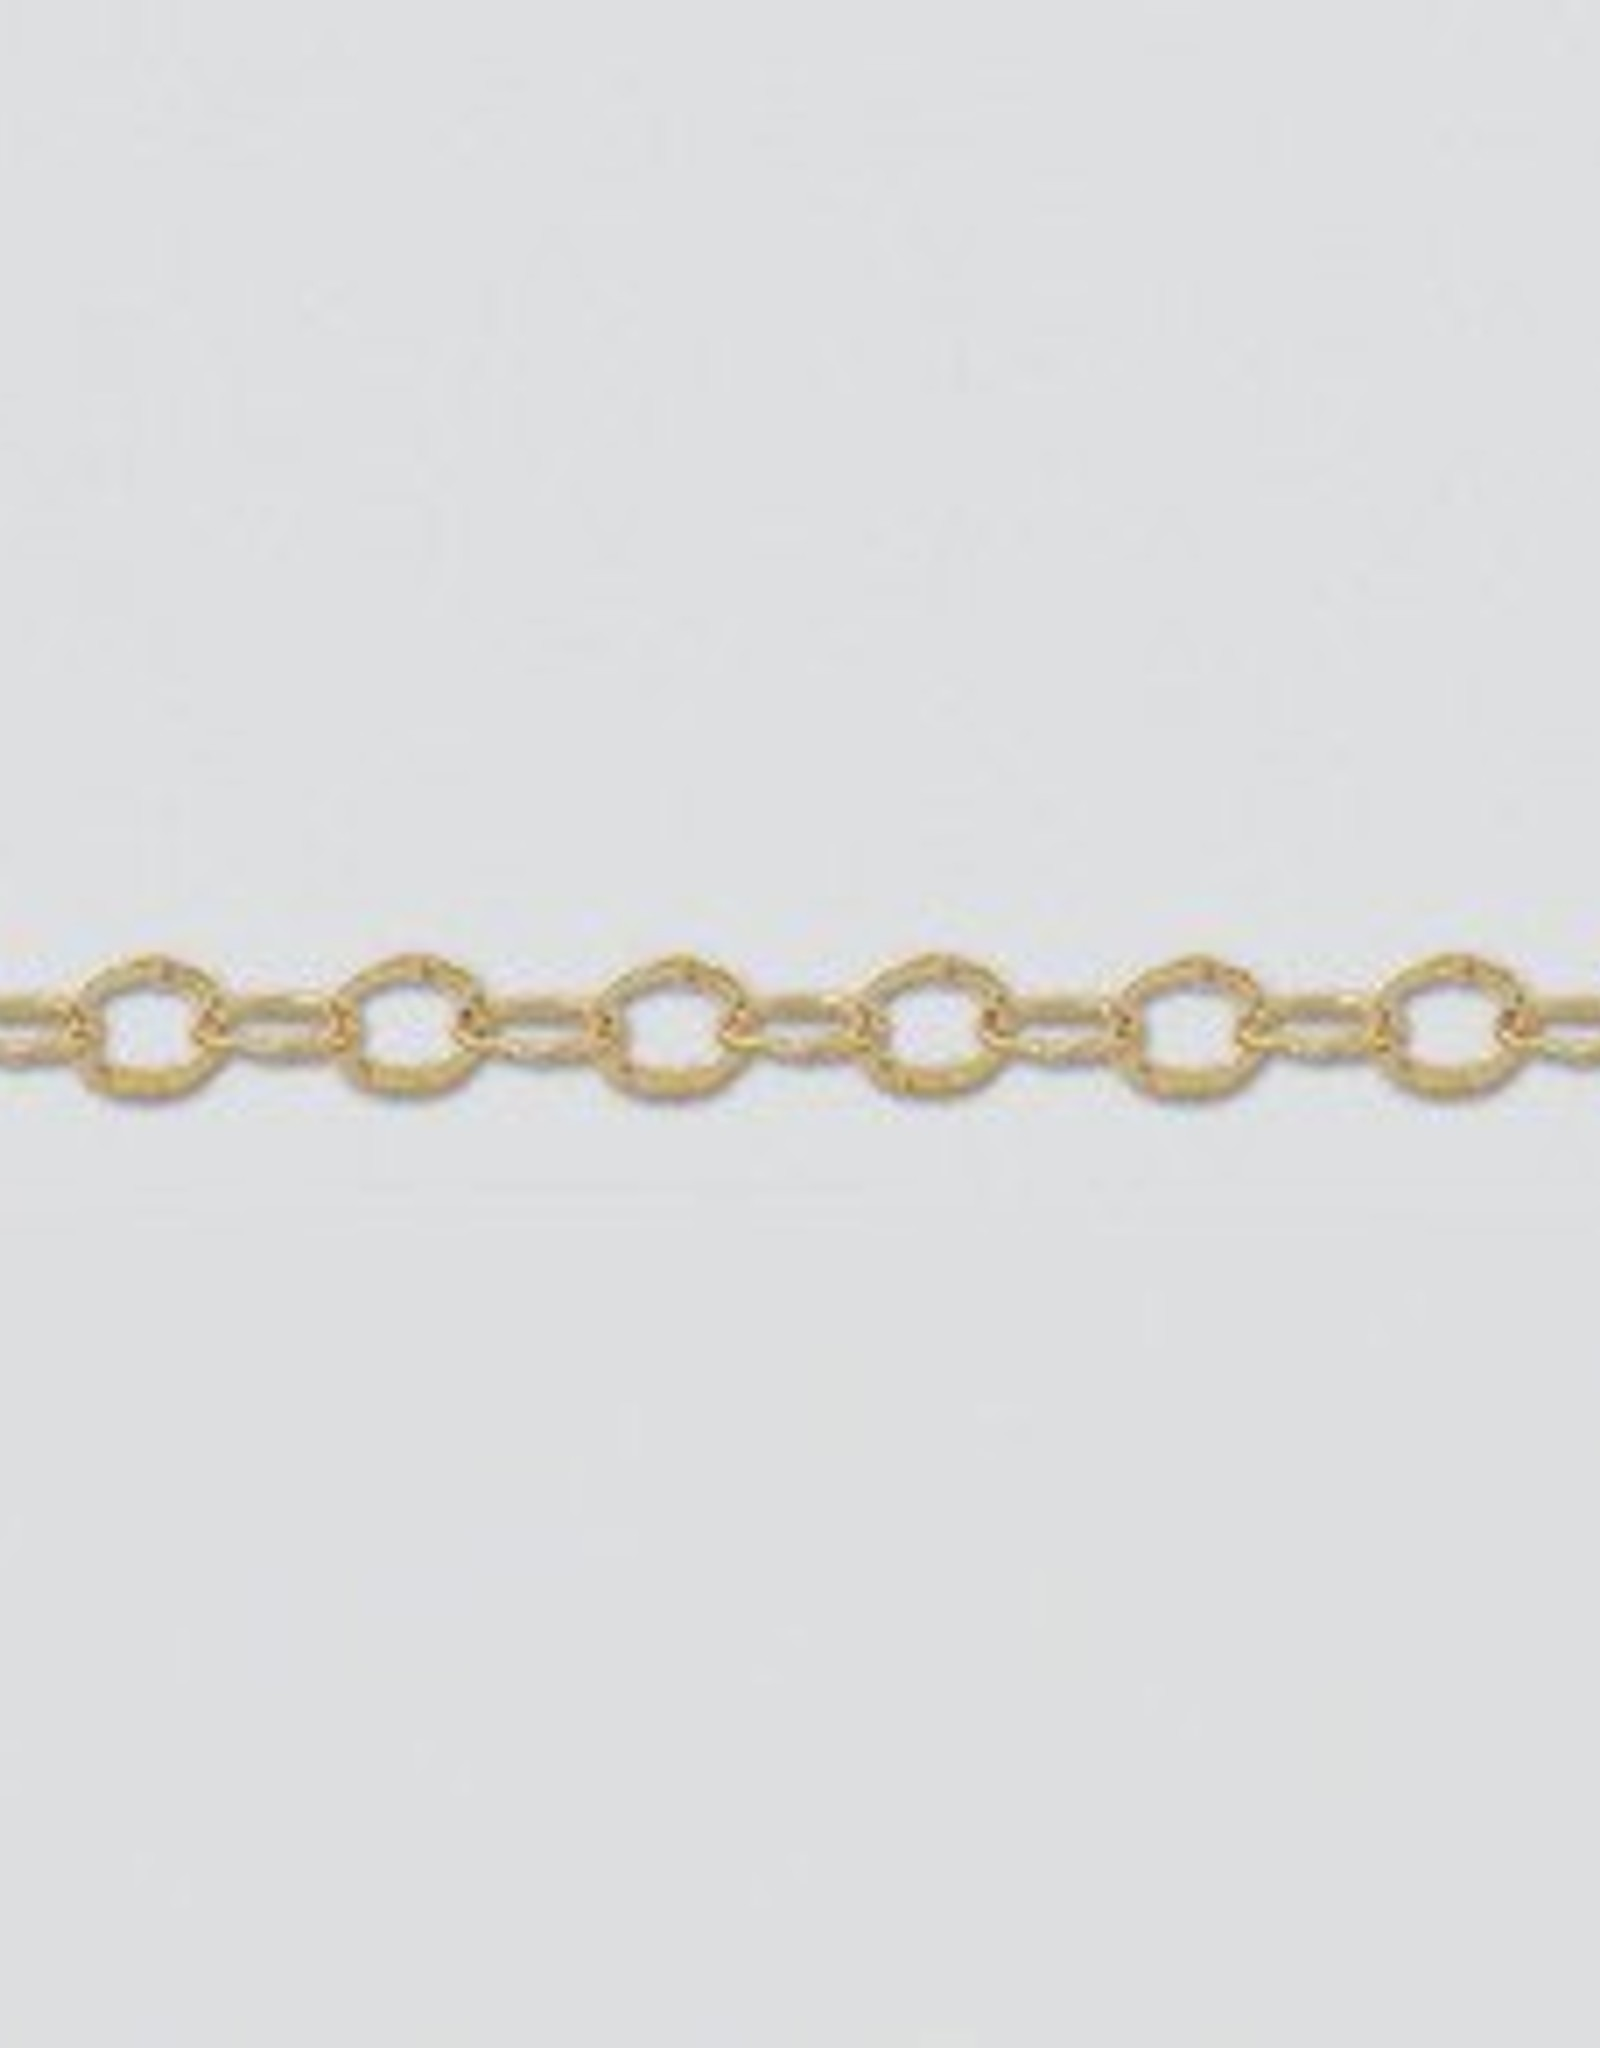 Flat Nugget Chain 14k Gold Filled Inch